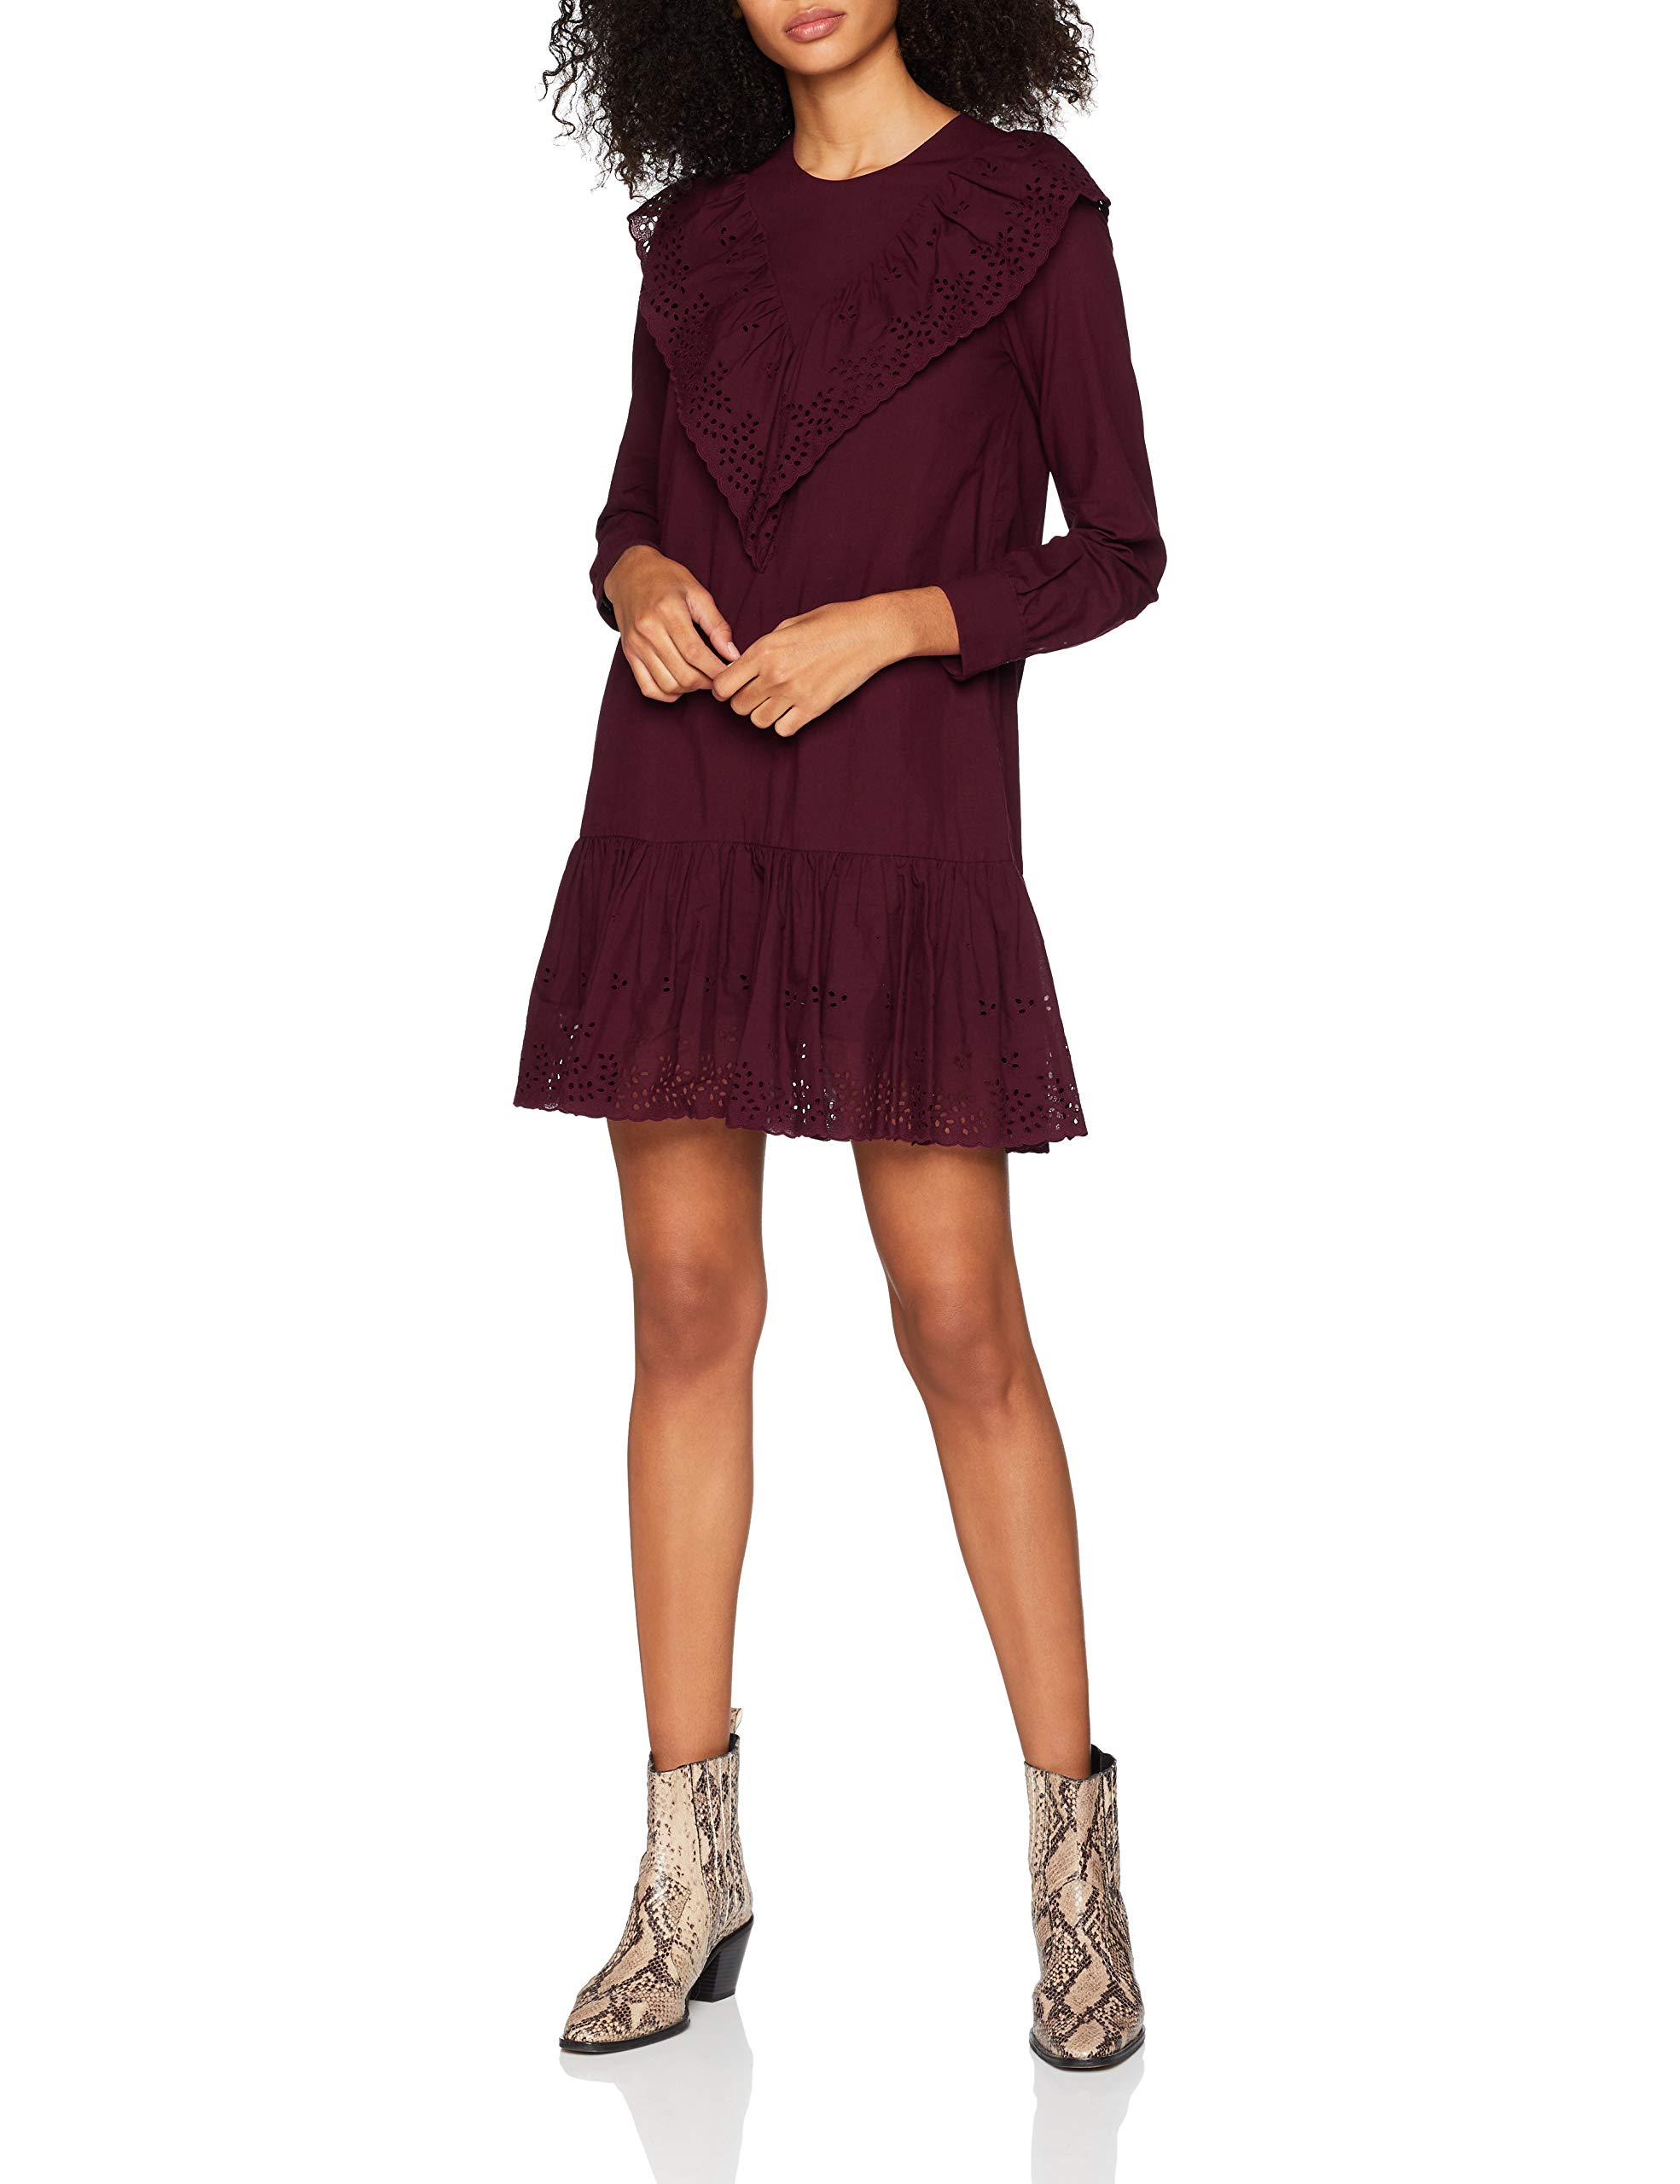 Paulamp; 04638taille 8orlane RobeRougebordeaux Sister Fabricant36Femme Joe burgundy 8OPXNkwn0Z